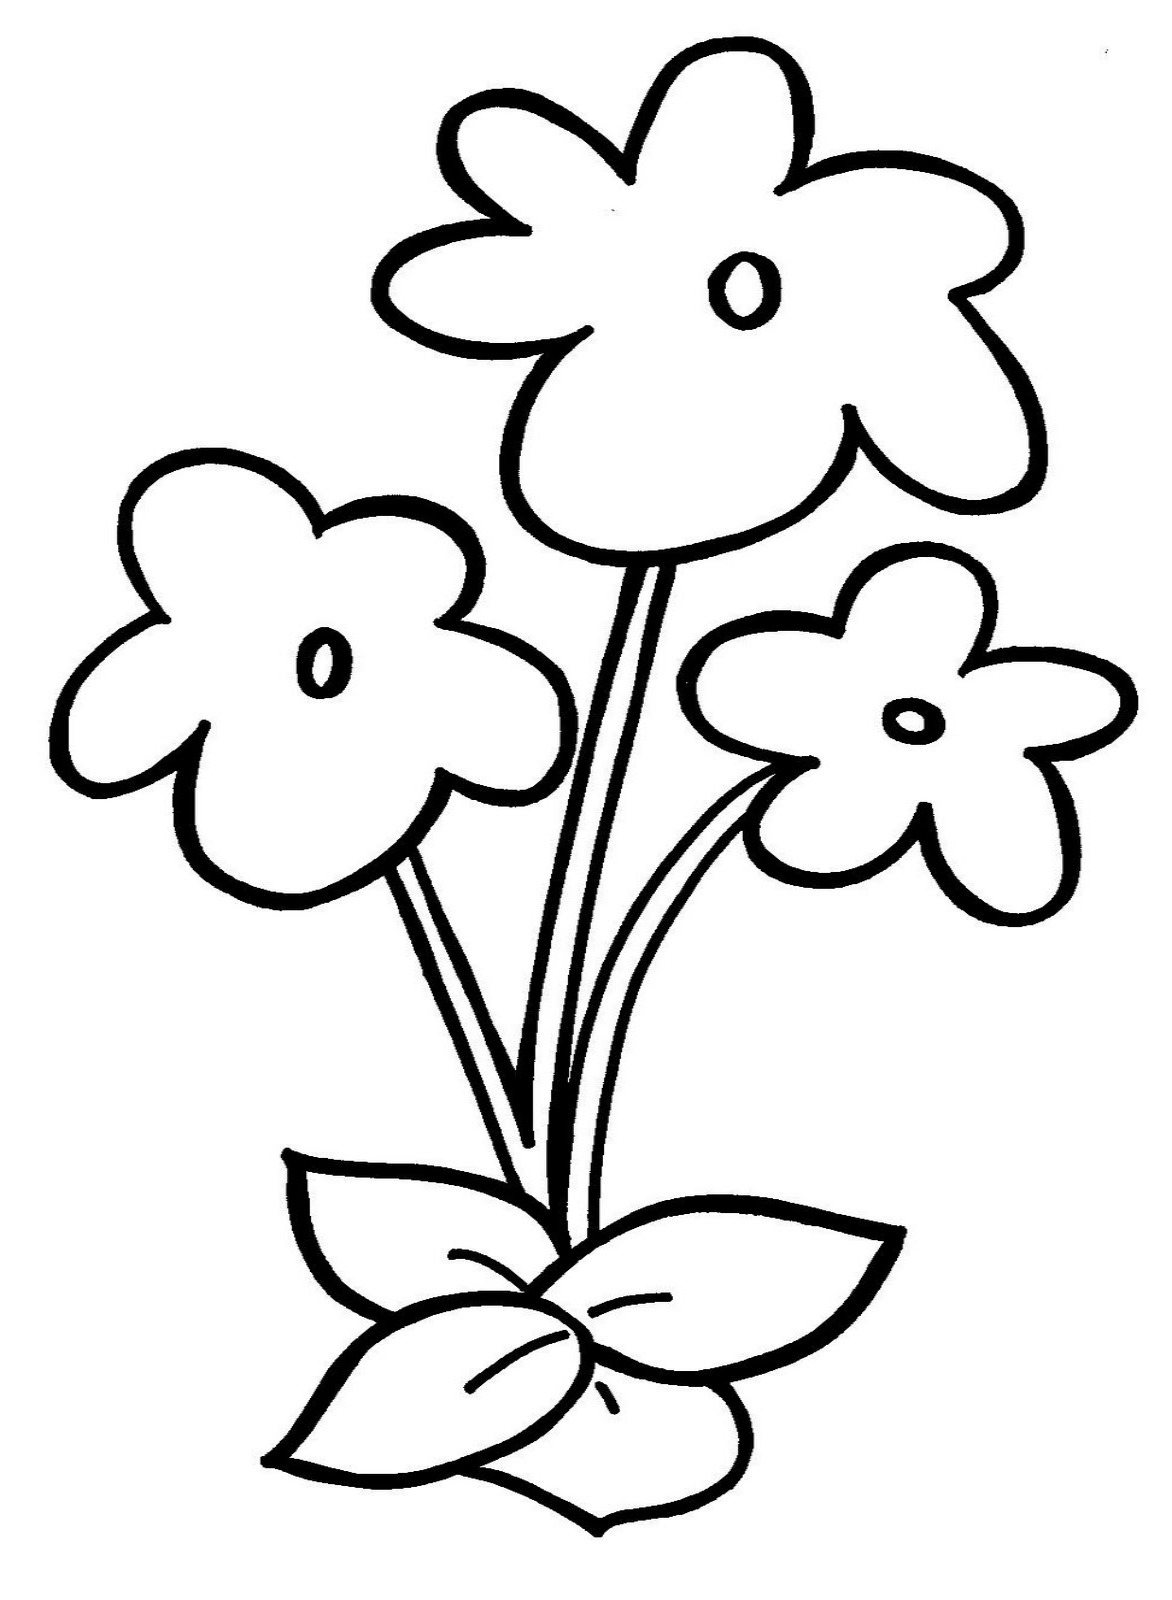 coloring picture of flower free printable flower coloring pages for kids best picture of flower coloring